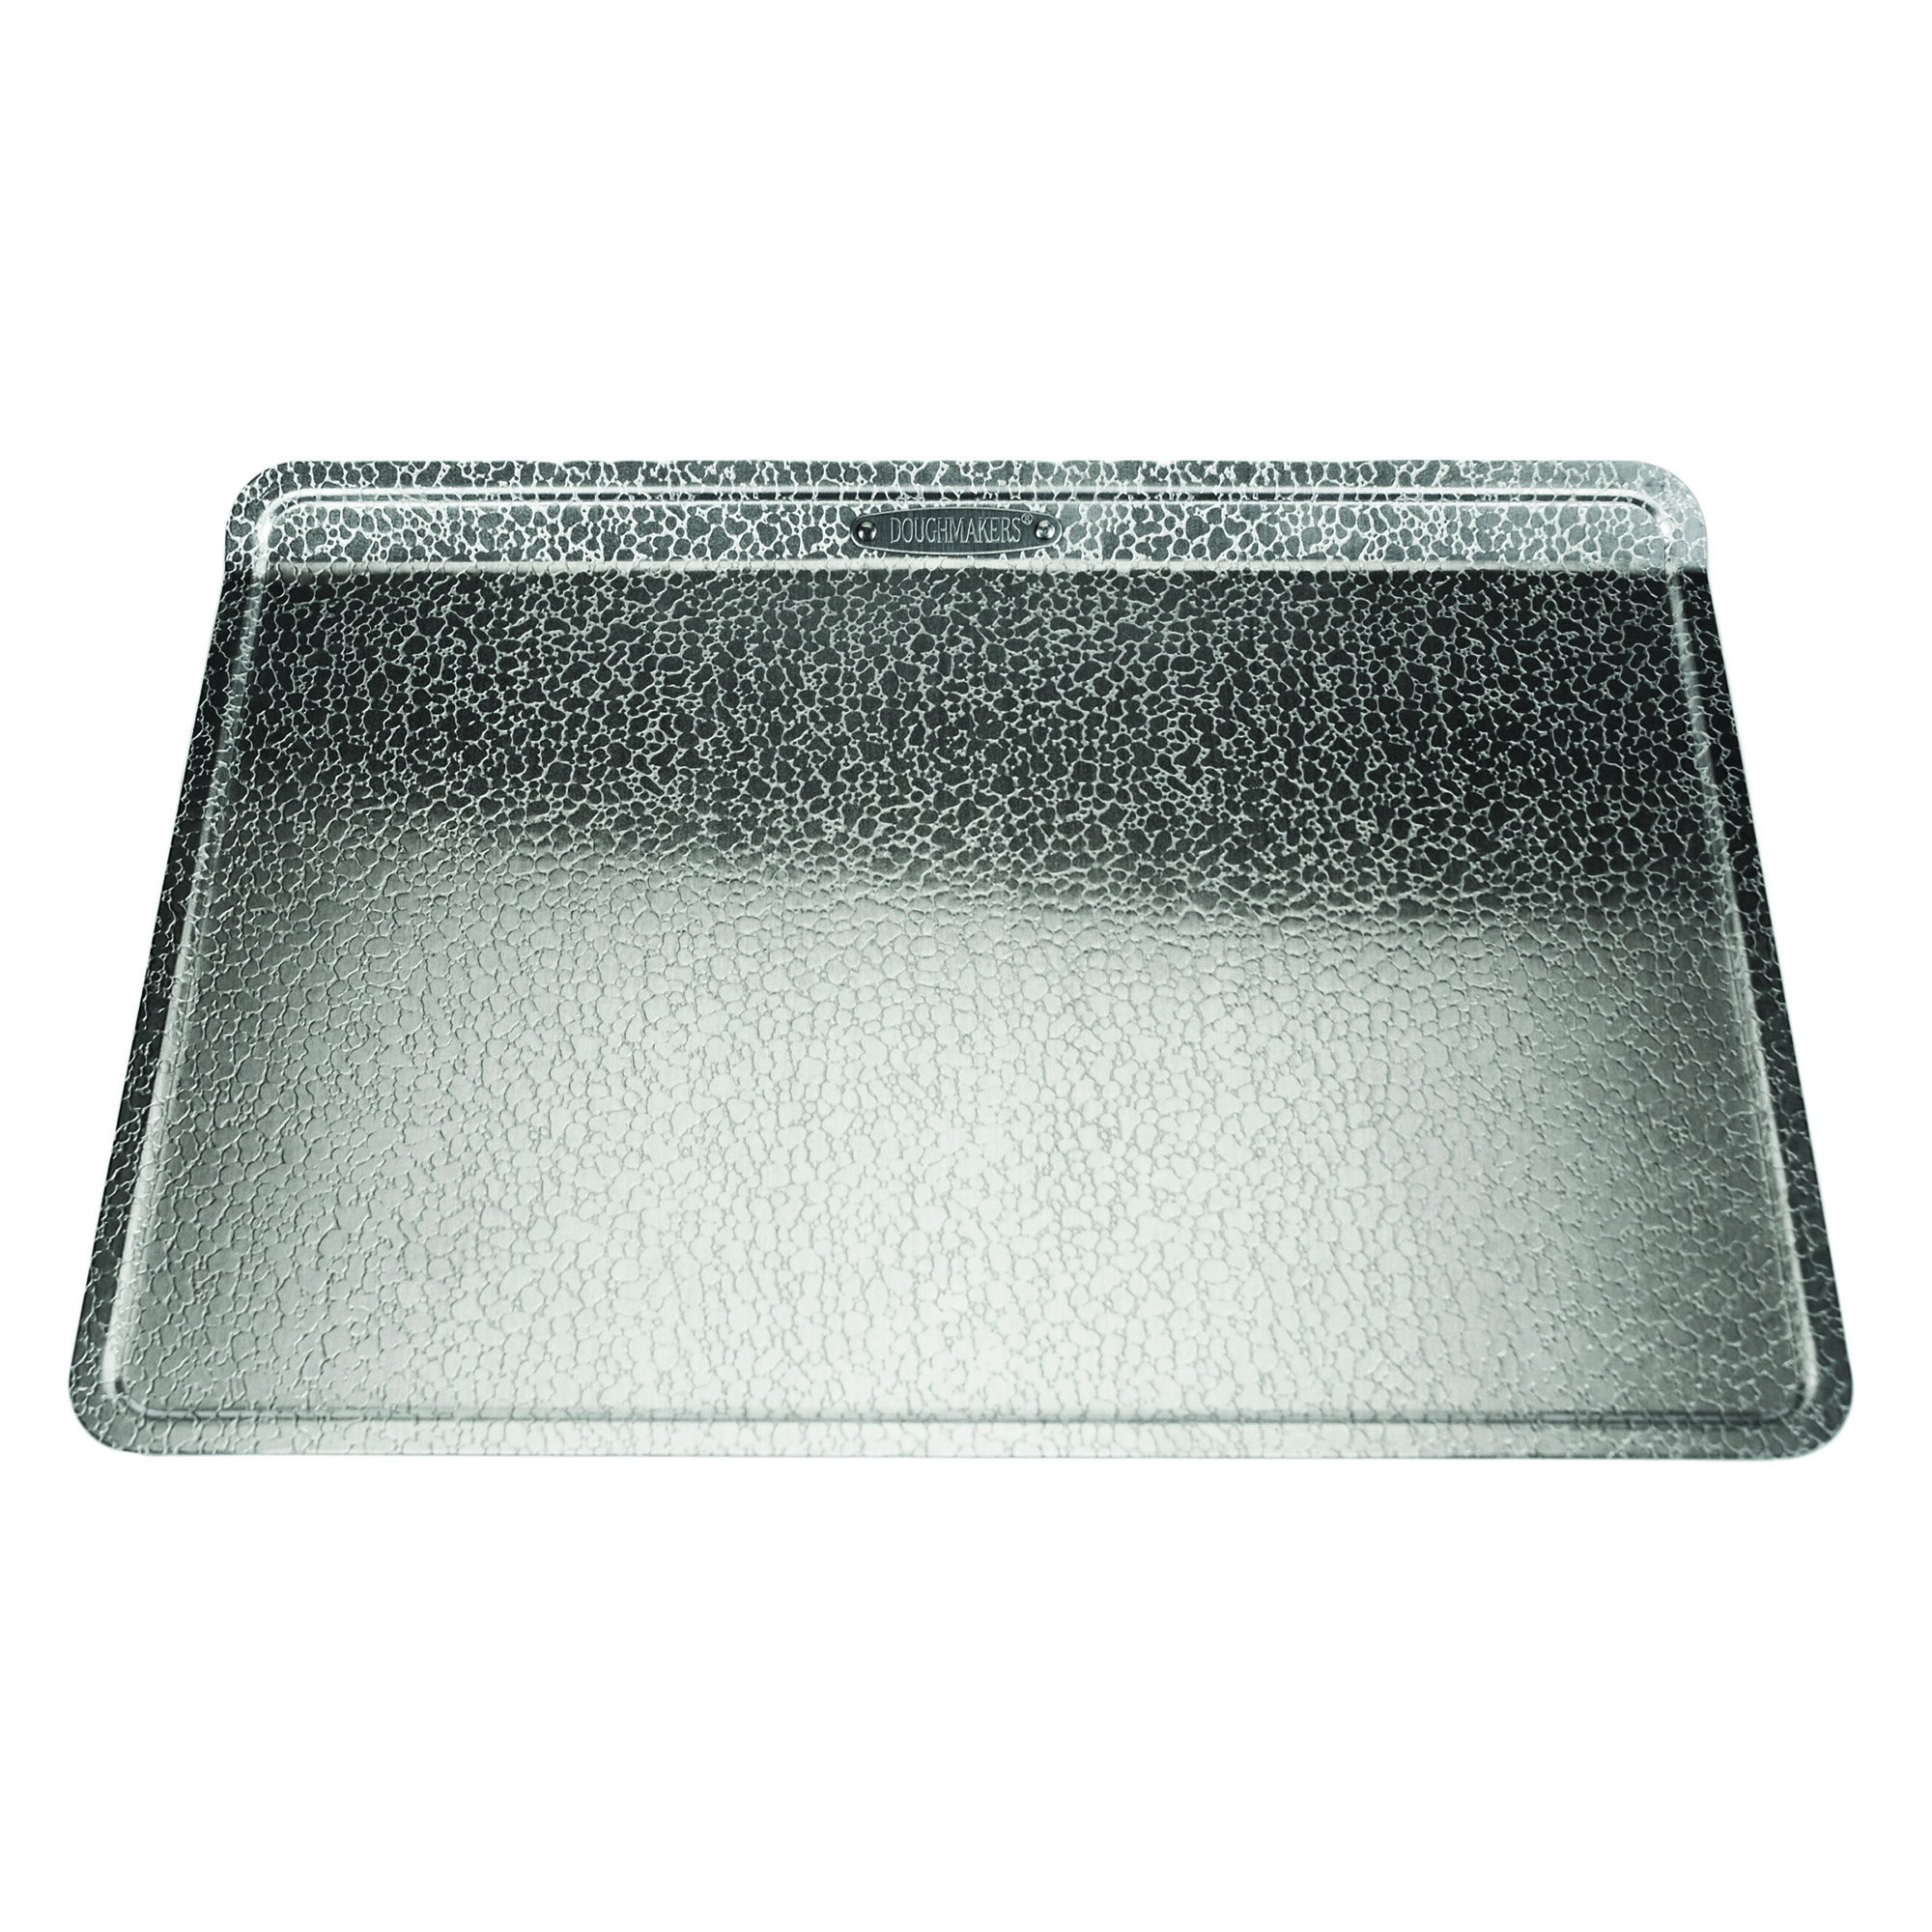 Grand Cookie Sheet Commercial Grade Aluminum Bake Pan 14 x 17.5